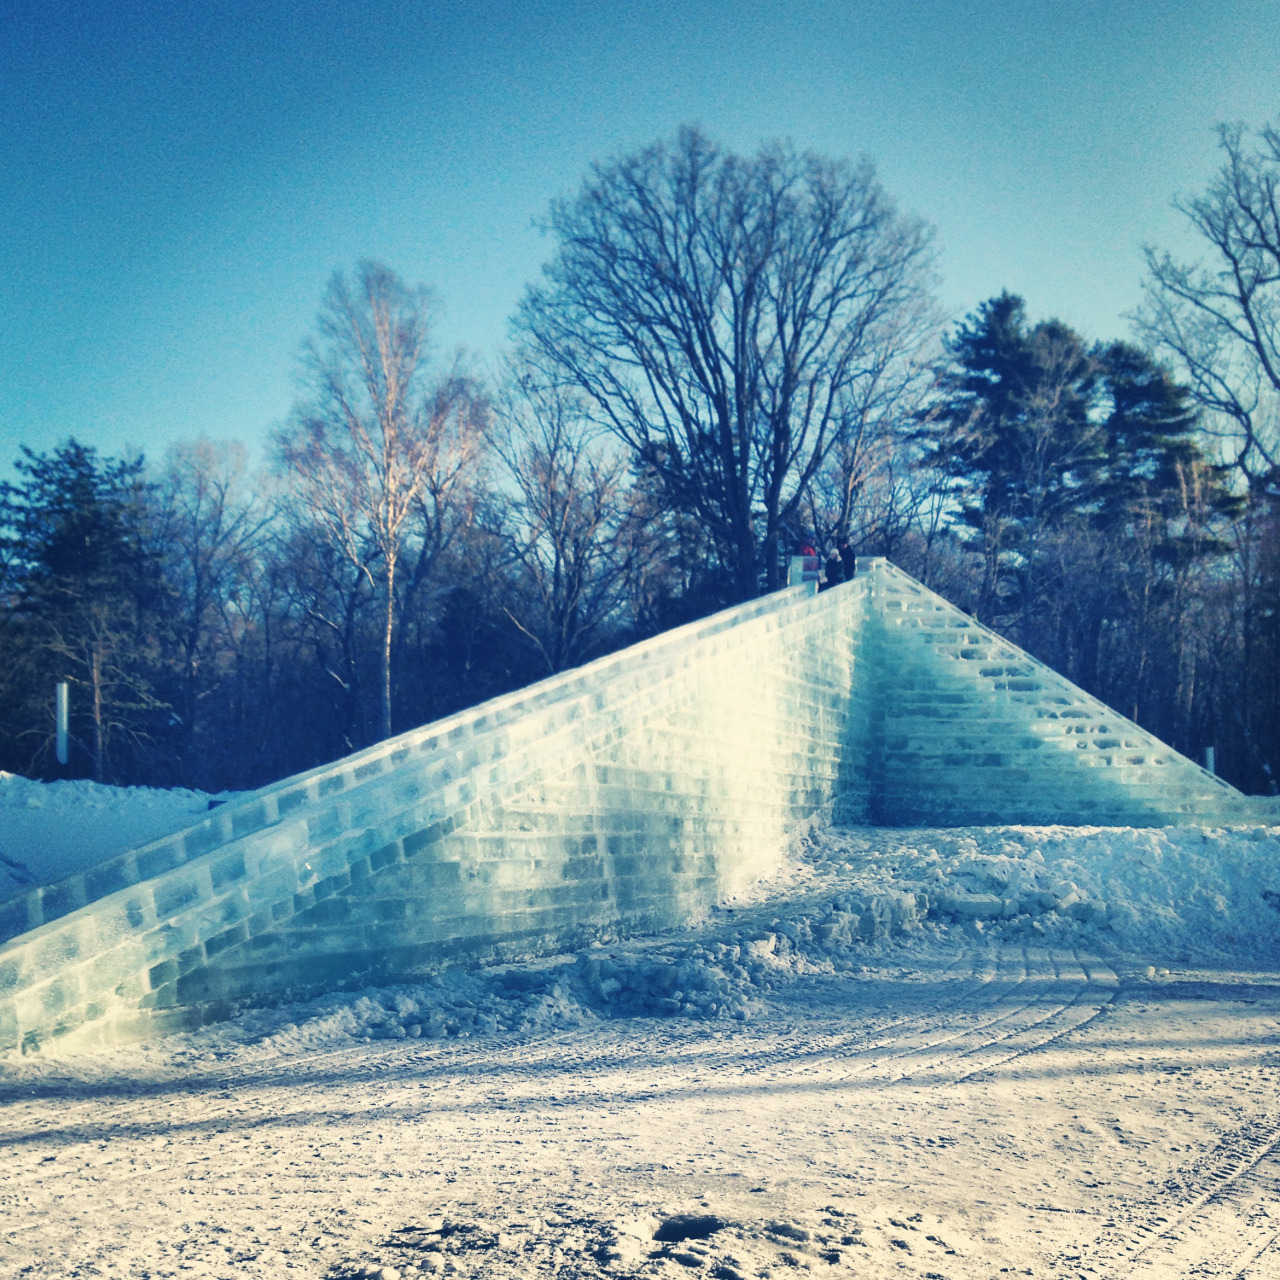 An ice slide you could tube down